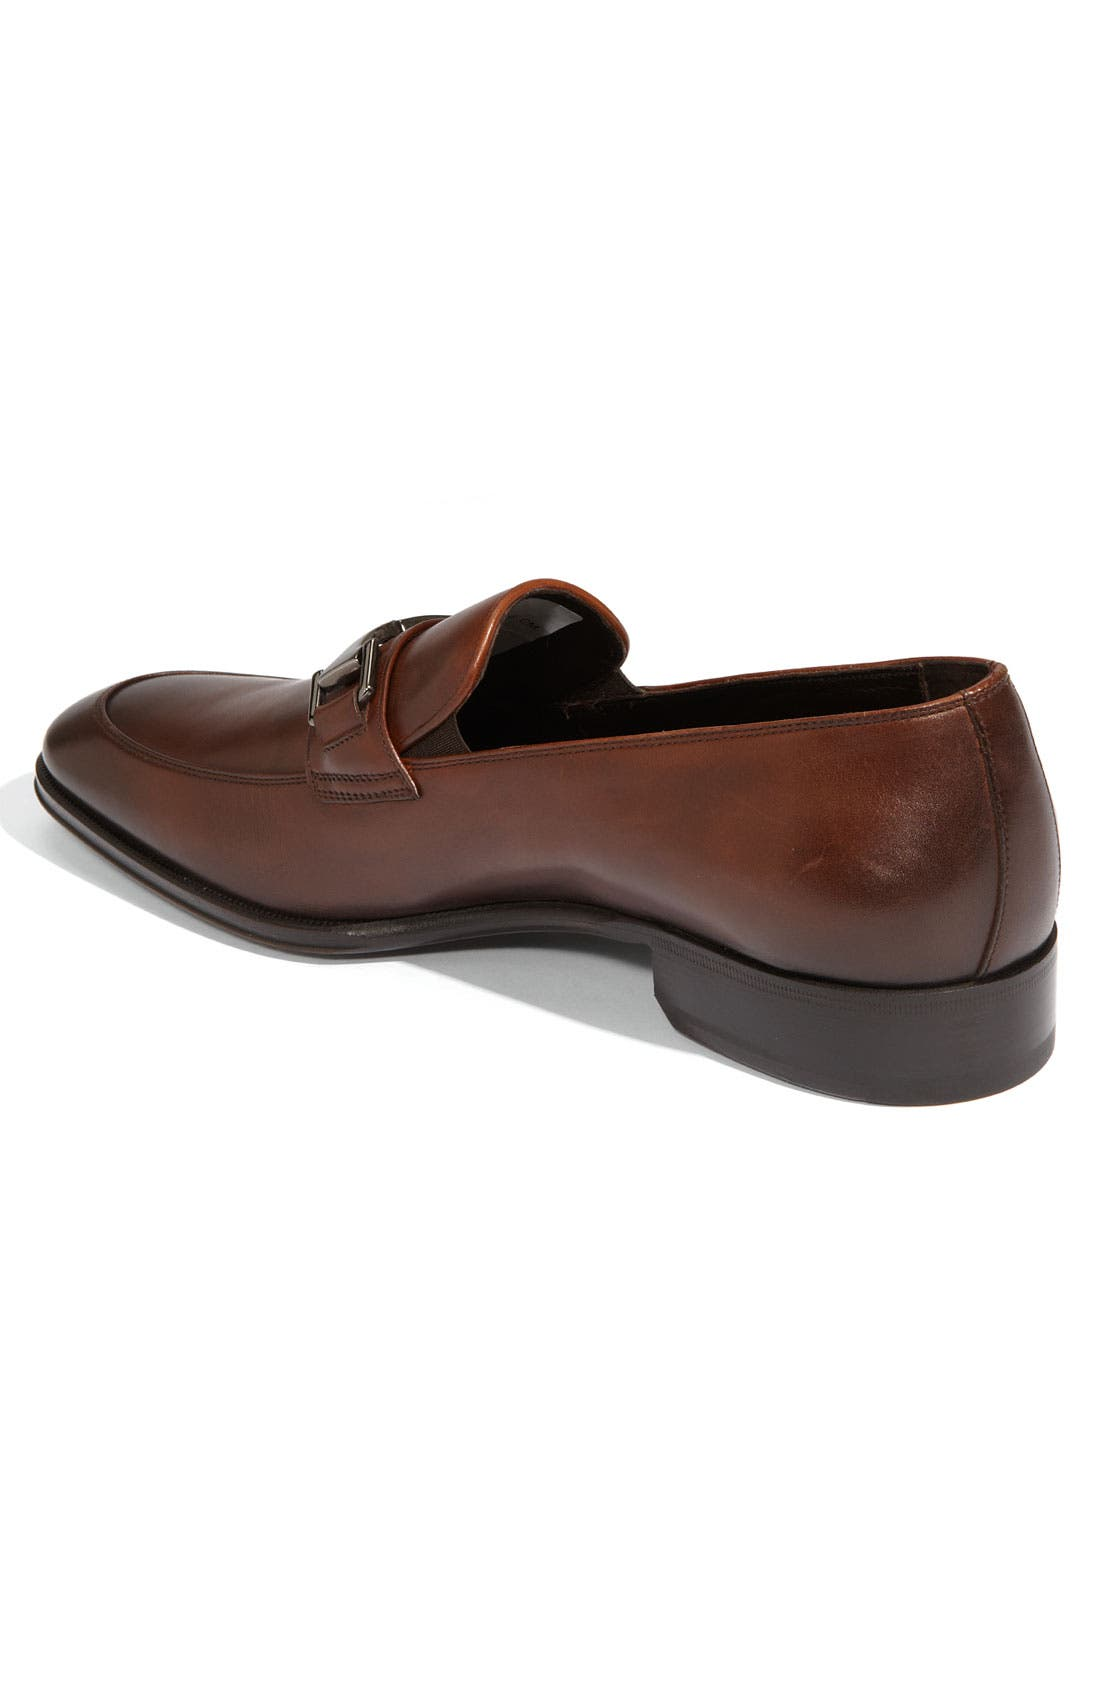 Alternate Image 3  - Bruno Magli 'Rigen' Loafer